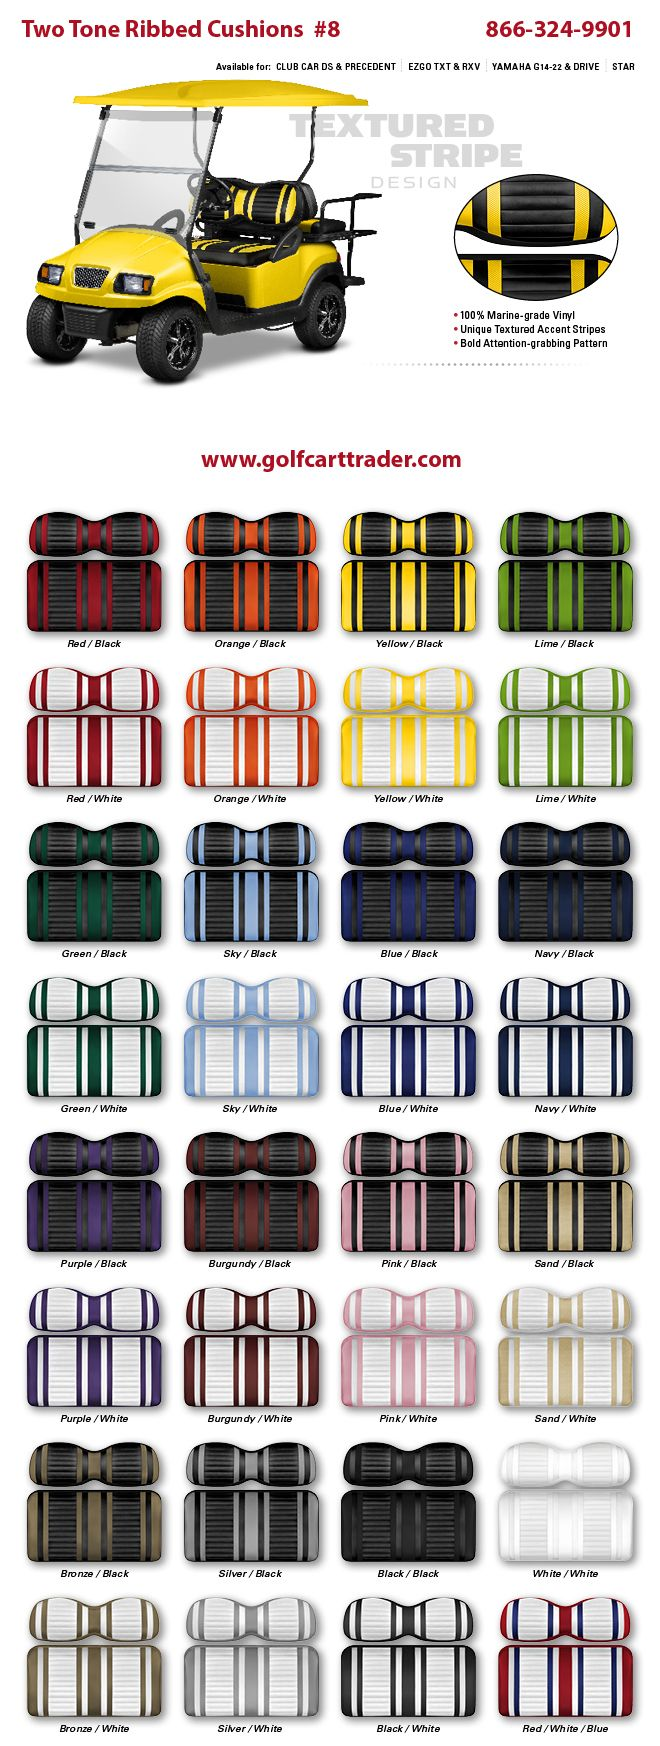 Custom seats 8 golf cart custom seat cushions and seat covers here youll find just about every golf related accessory that is made for golf carts repair and maintenance items special use items and lots of jeuxipadfo Choice Image